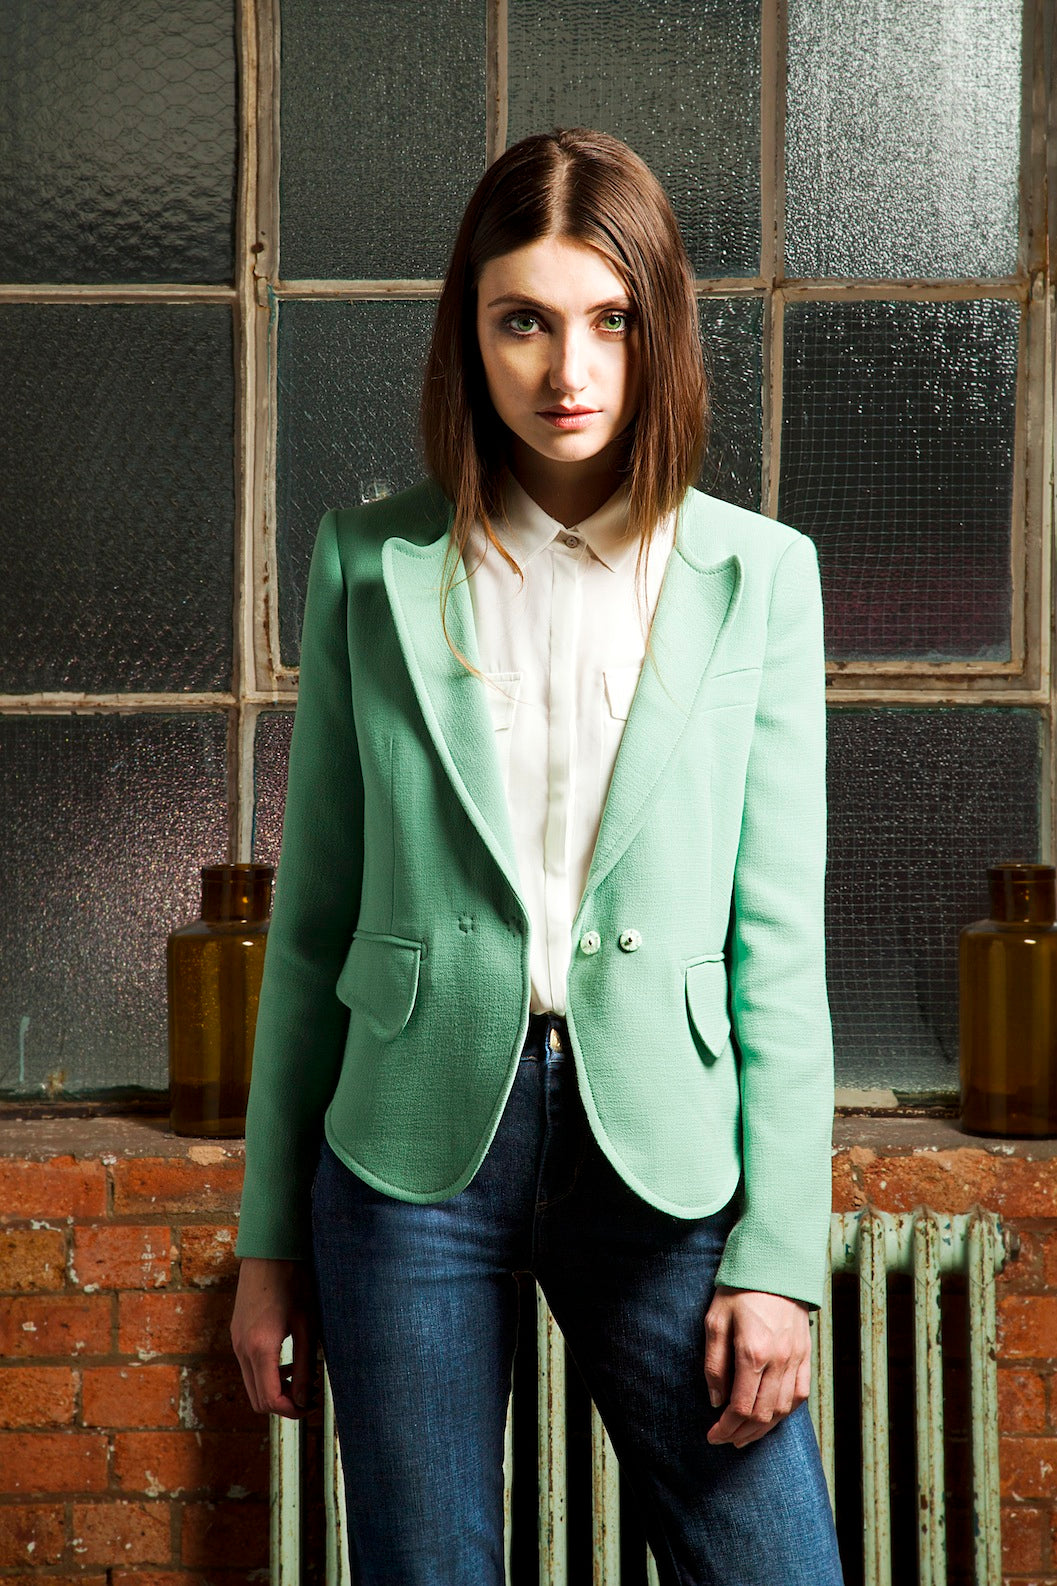 donna ida, london fashion, london style, green blazer, jacket, white shirt, button up shirt, collar, blue jeans, high waisted jeans, blue denim